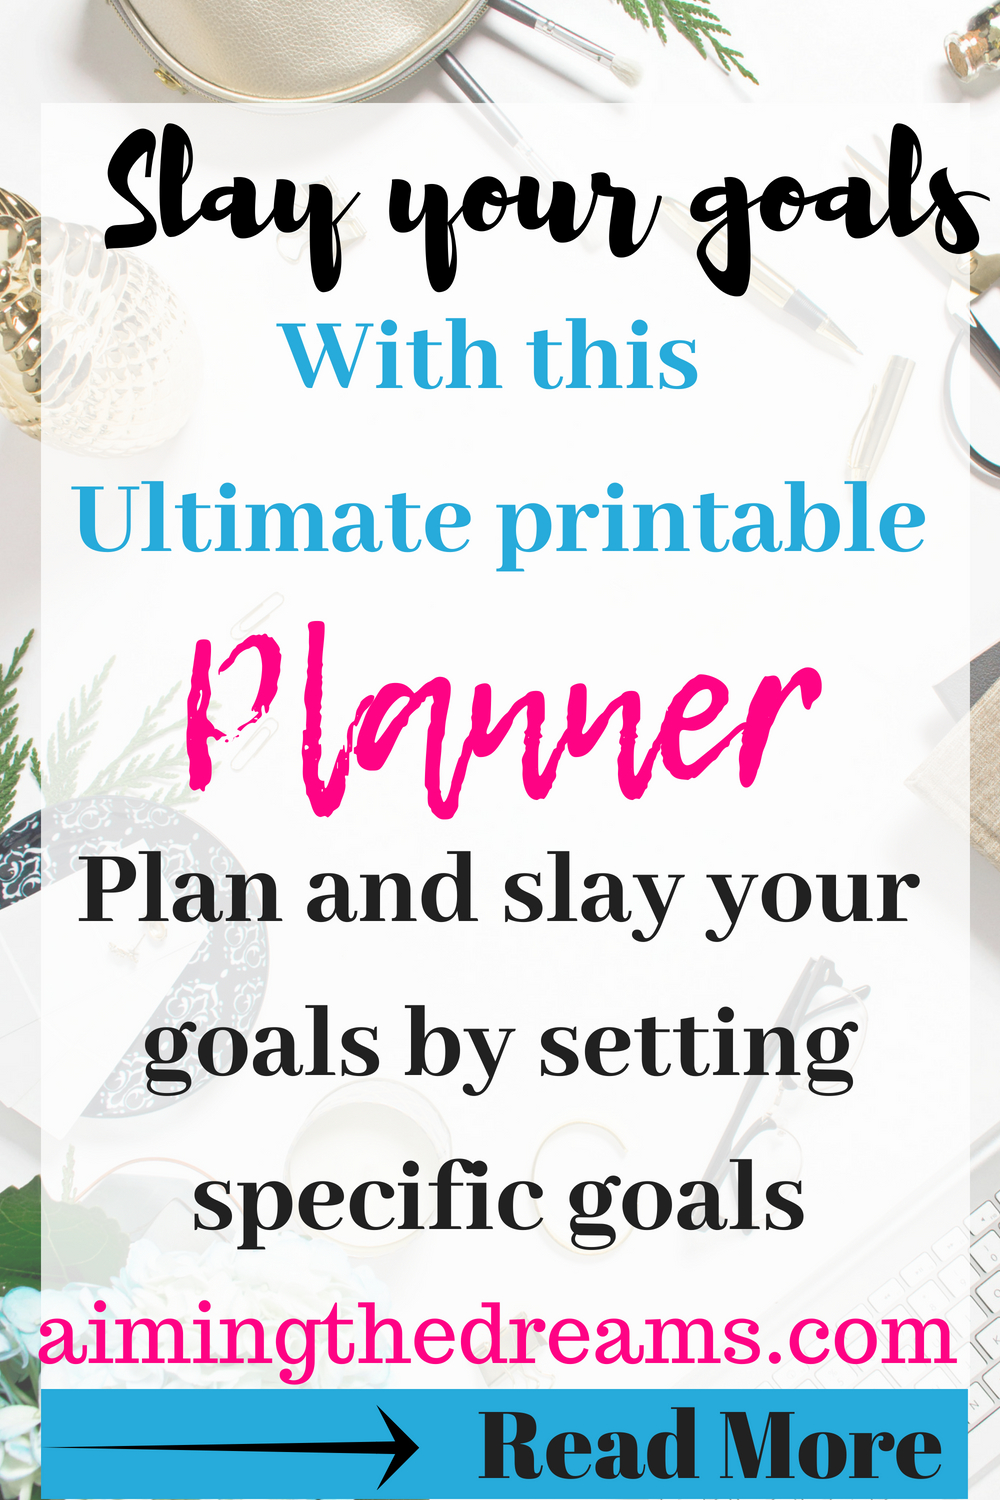 Planning your goals is important and so is slaying them. Accomplishing goals is 20% planning and 80% slaying. This ultimate planner will help you in setting your goals and slaying them.